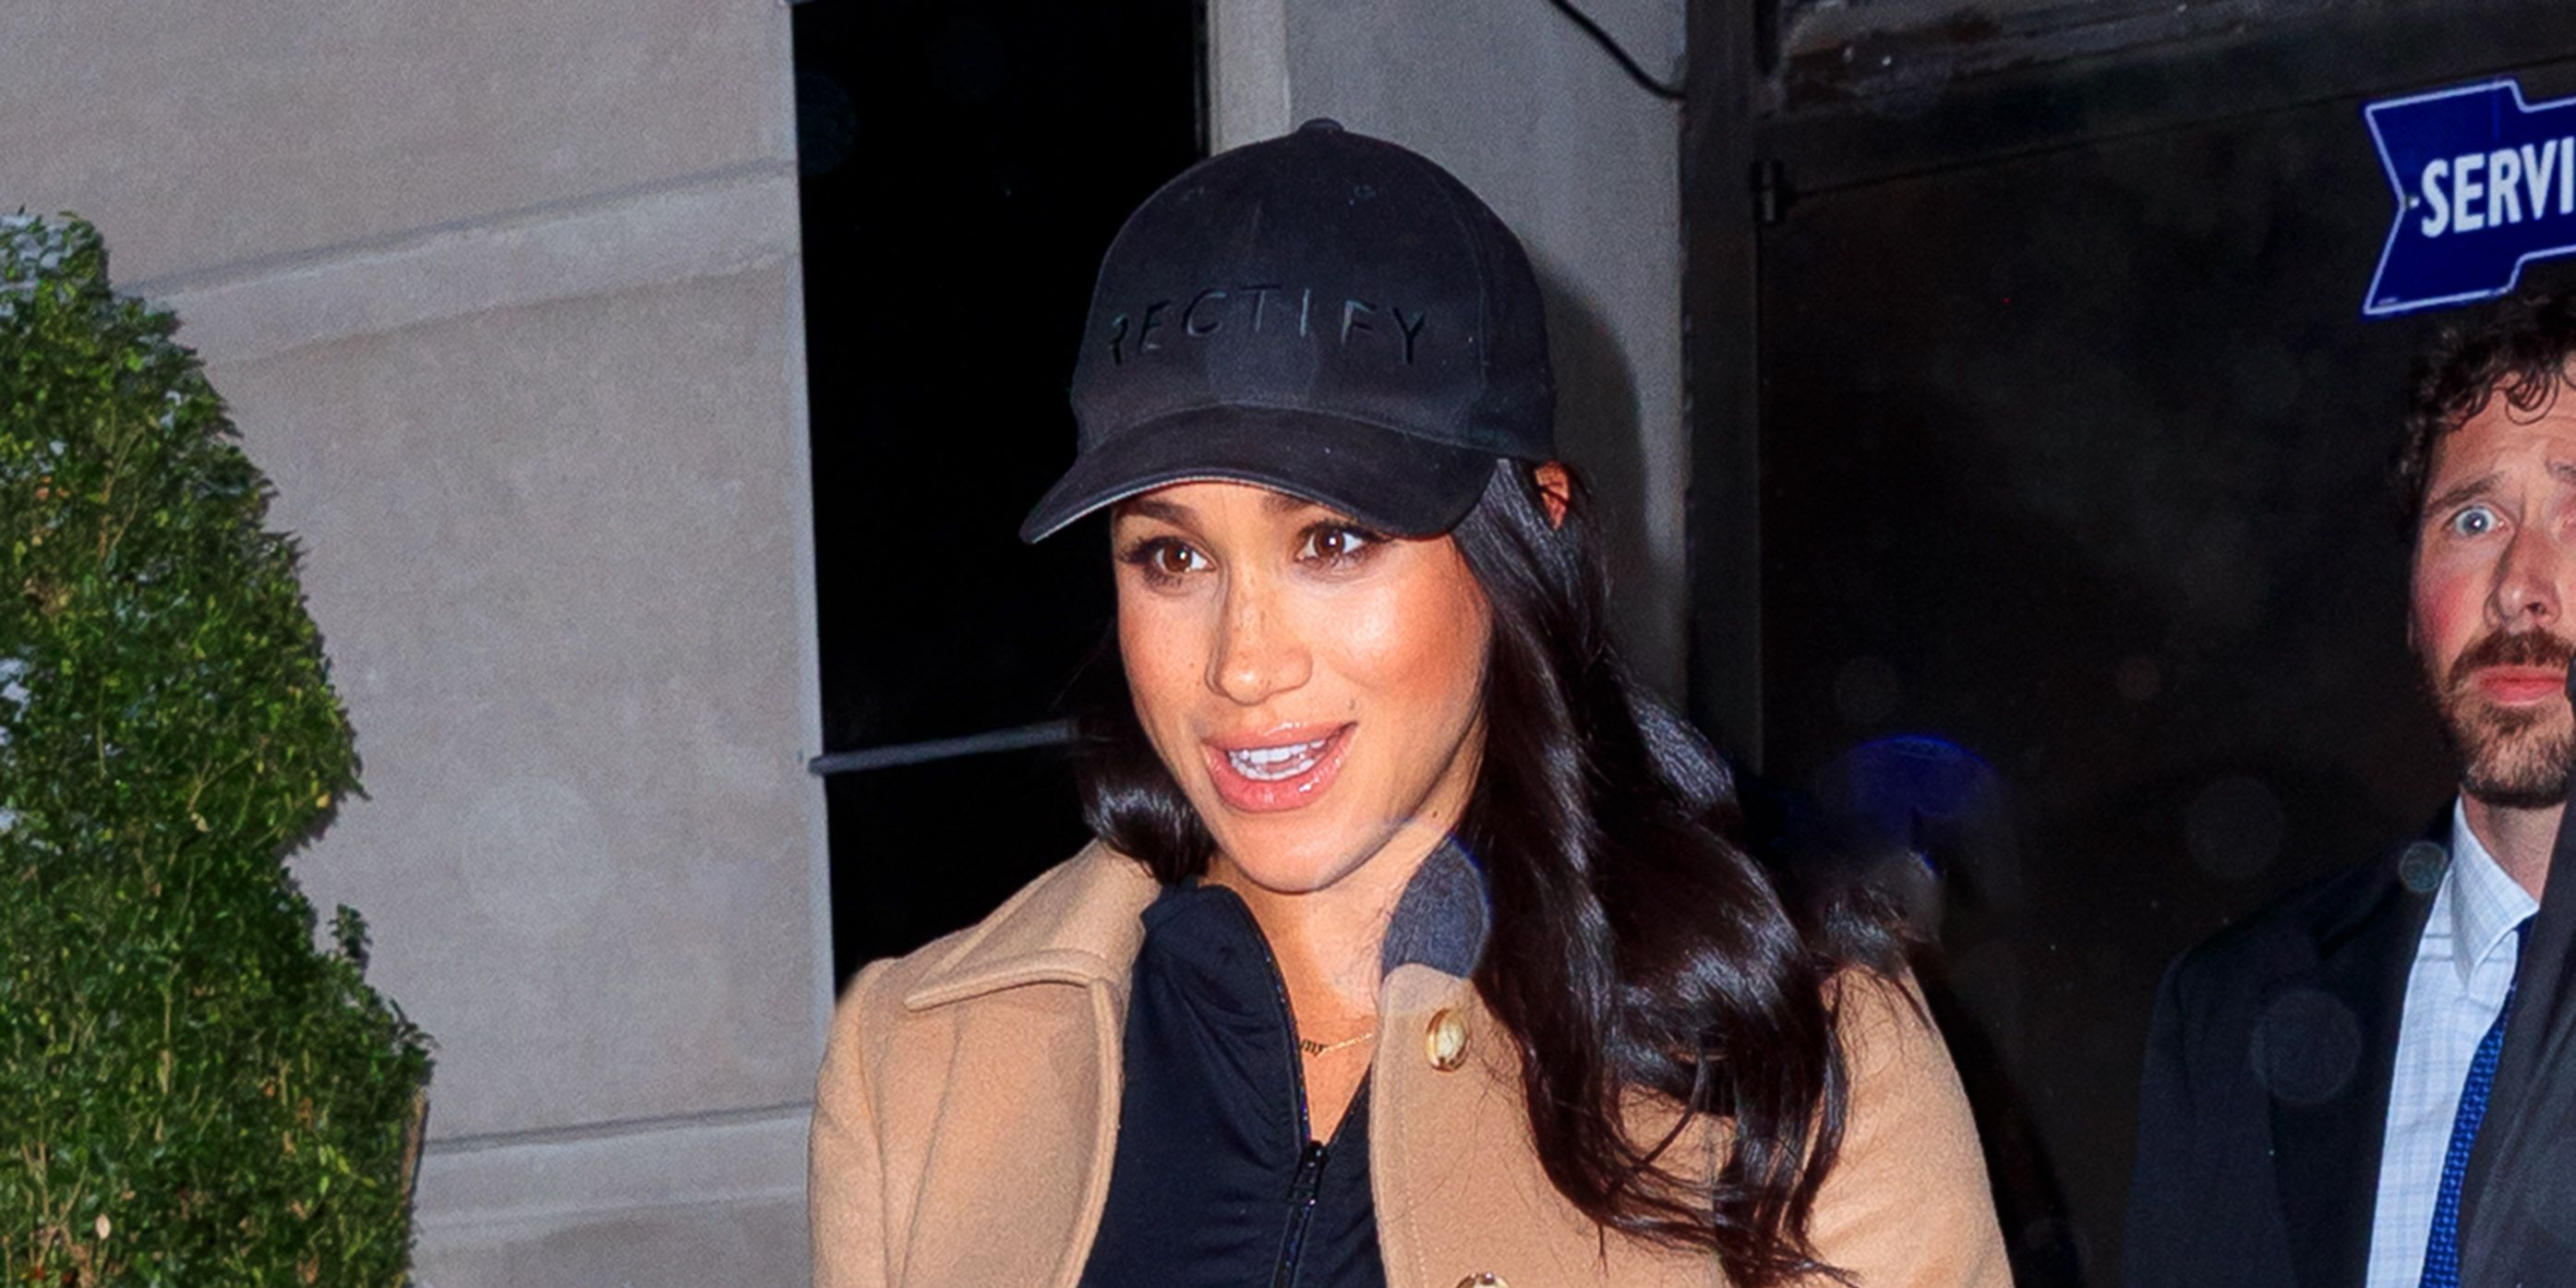 Meghan Markle Wears Mummy Necklace In New York For Her Baby Shower